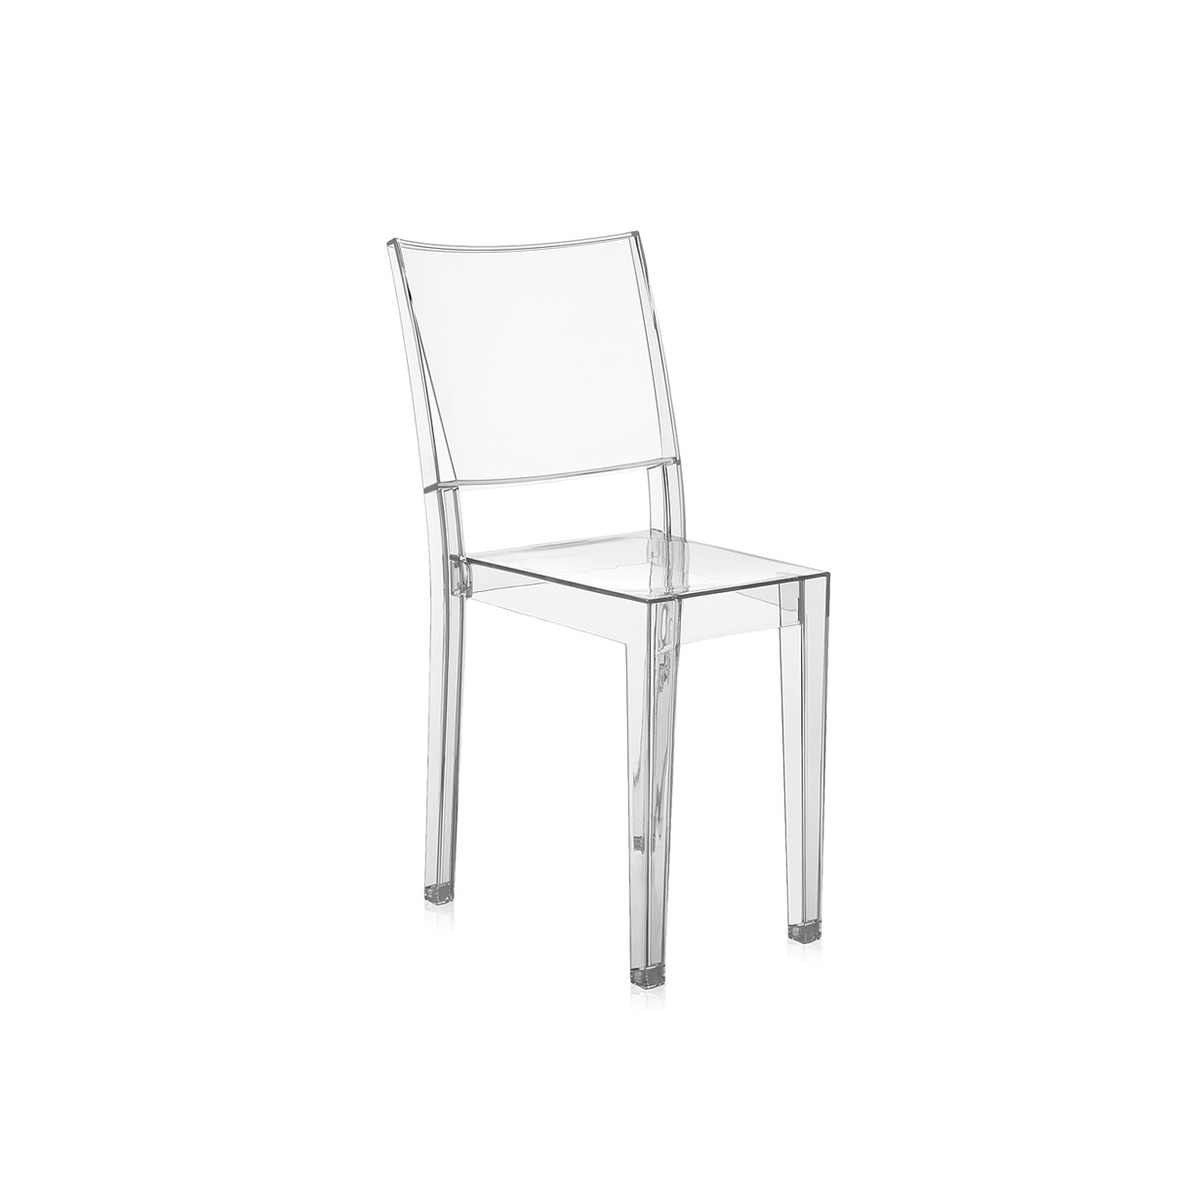 Swell La Marie Chair Inzonedesignstudio Interior Chair Design Inzonedesignstudiocom